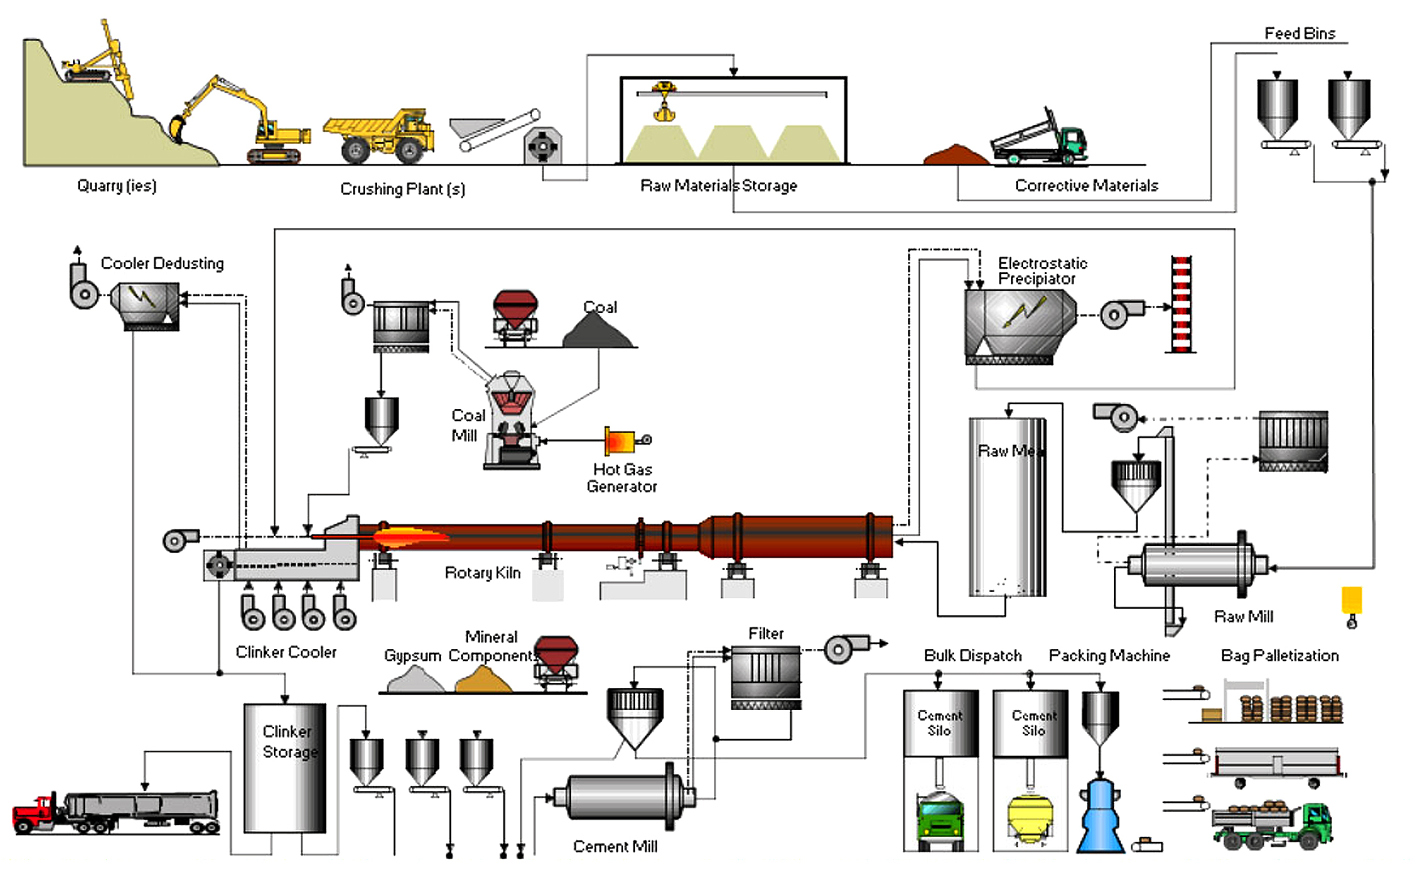 Ultratech Cement Cement Manufacturing Process : Asgco products for the cement industry conveyor